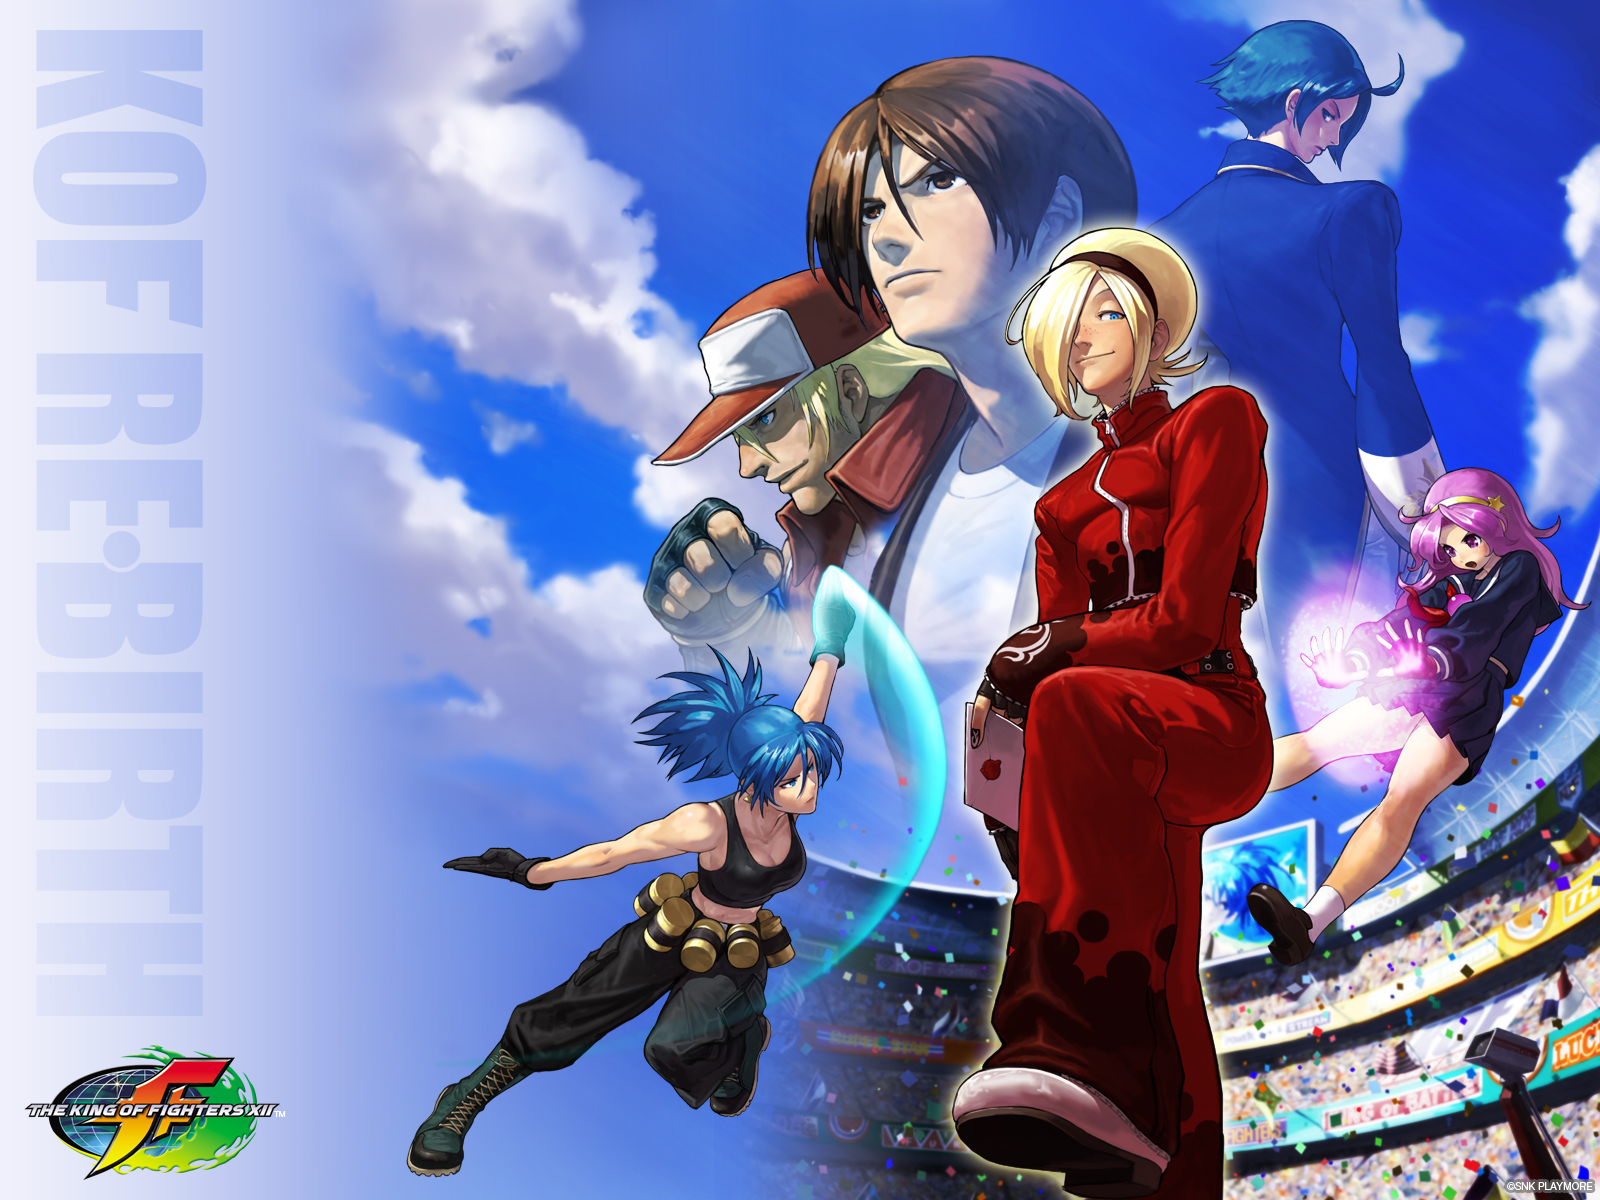 King of fighters anime